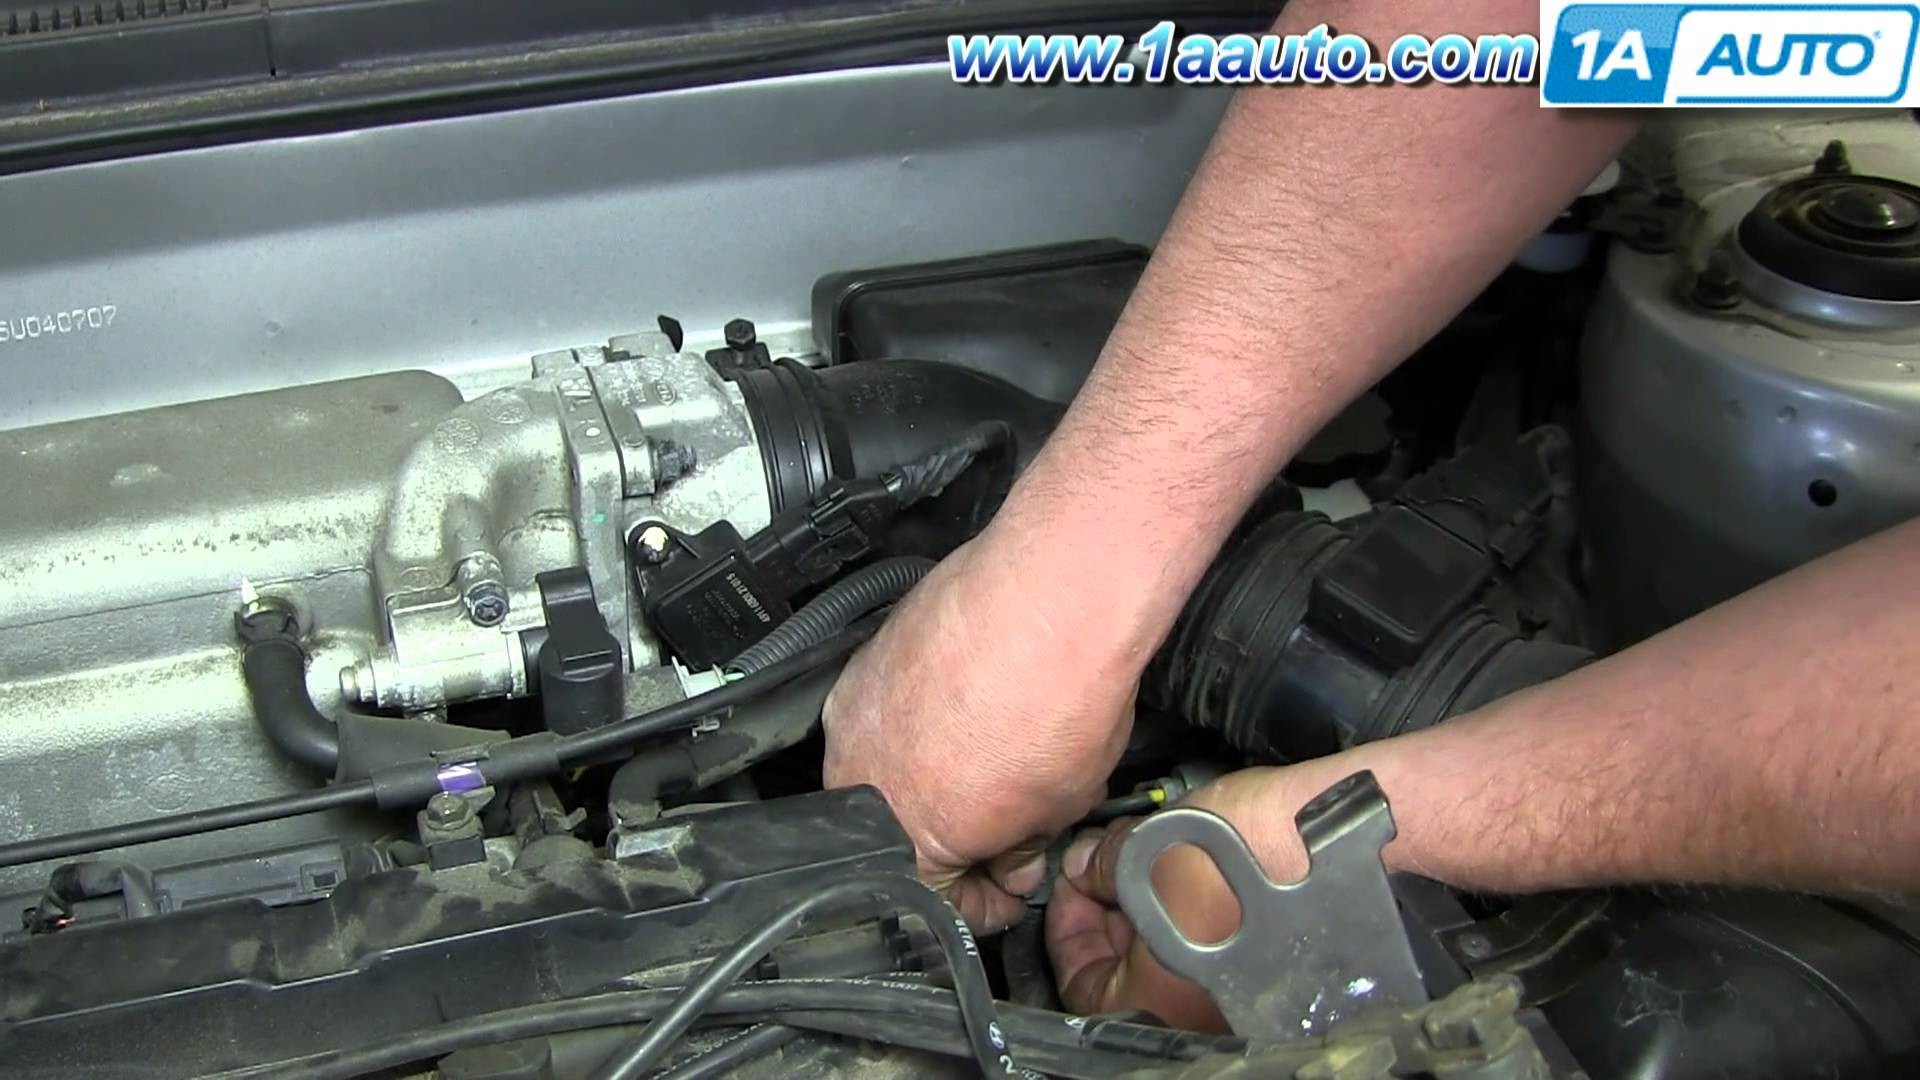 2002 Hyundai sonata Engine Diagram How to Install Replace Engine Ignition  Coil 2003 06 Hyundai Elantra